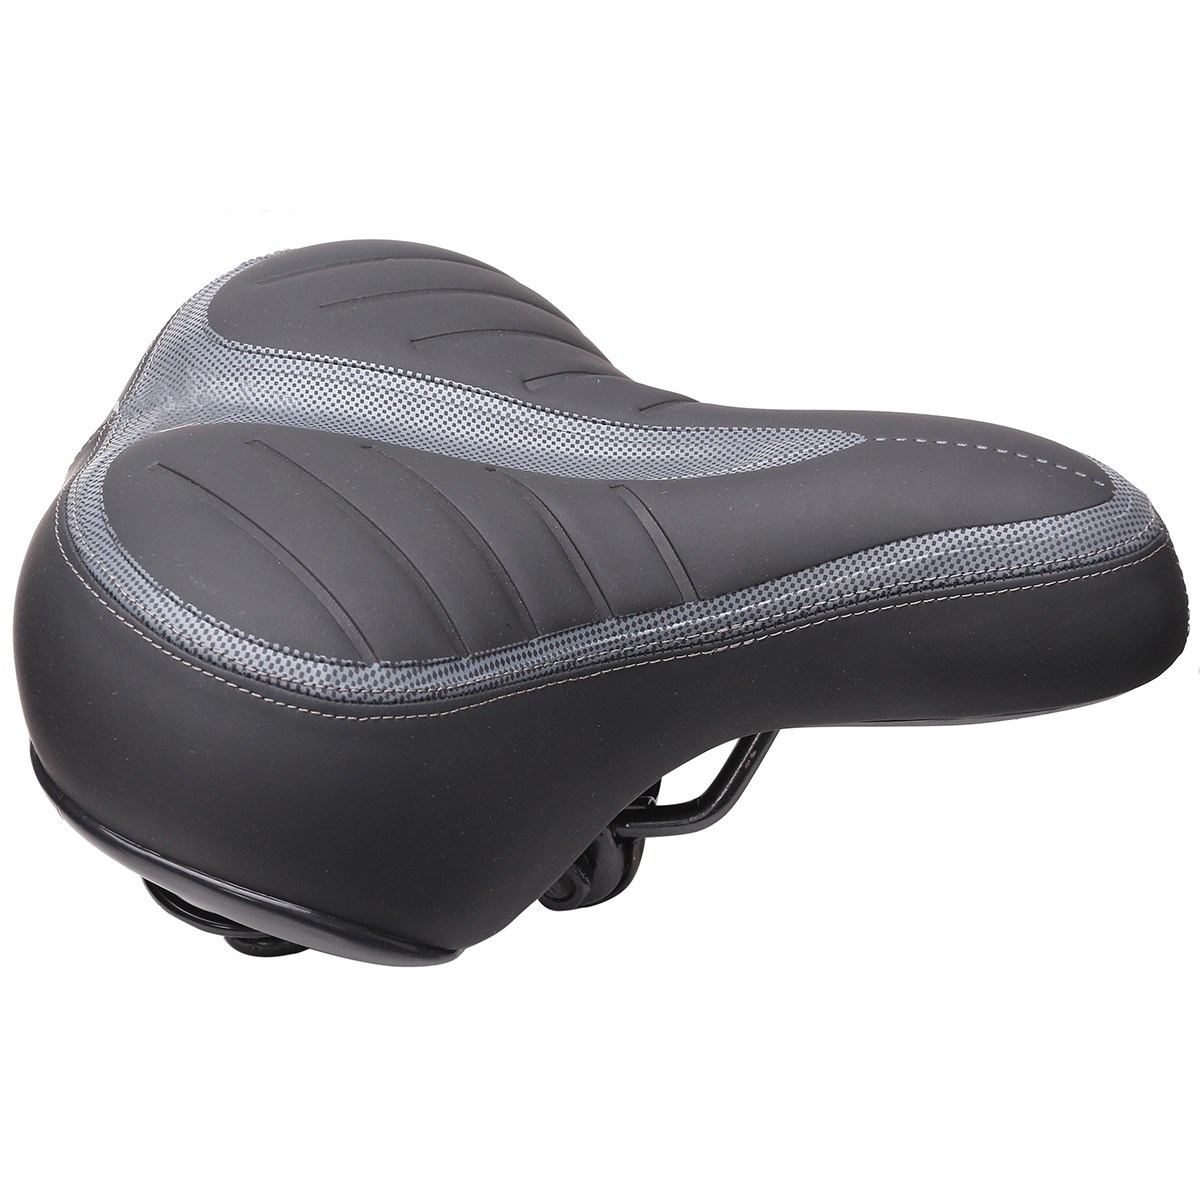 PU Leather Comfortable MTB Road Mountain Cycling Wide <font><b>Seat</b></font> Bicycle Saddle Mat Cushion Soft <font><b>Seat</b></font> Cover for Bike Bicycle parts